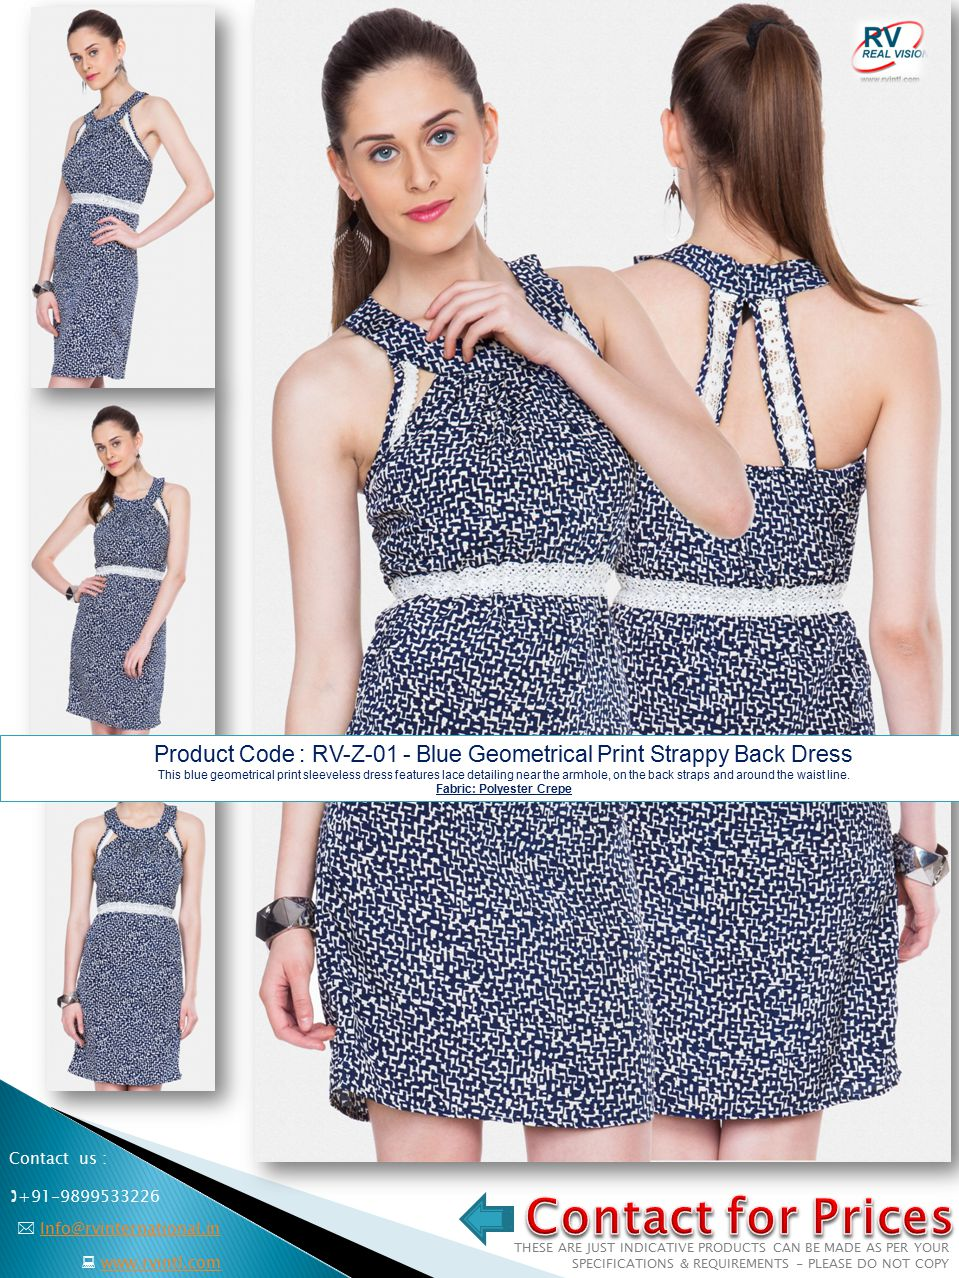 Product Code : RV-Z-01 - Blue Geometrical Print Strappy Back Dress This blue geometrical print sleeveless dress features lace detailing near the armhole, on the back straps and around the waist line.